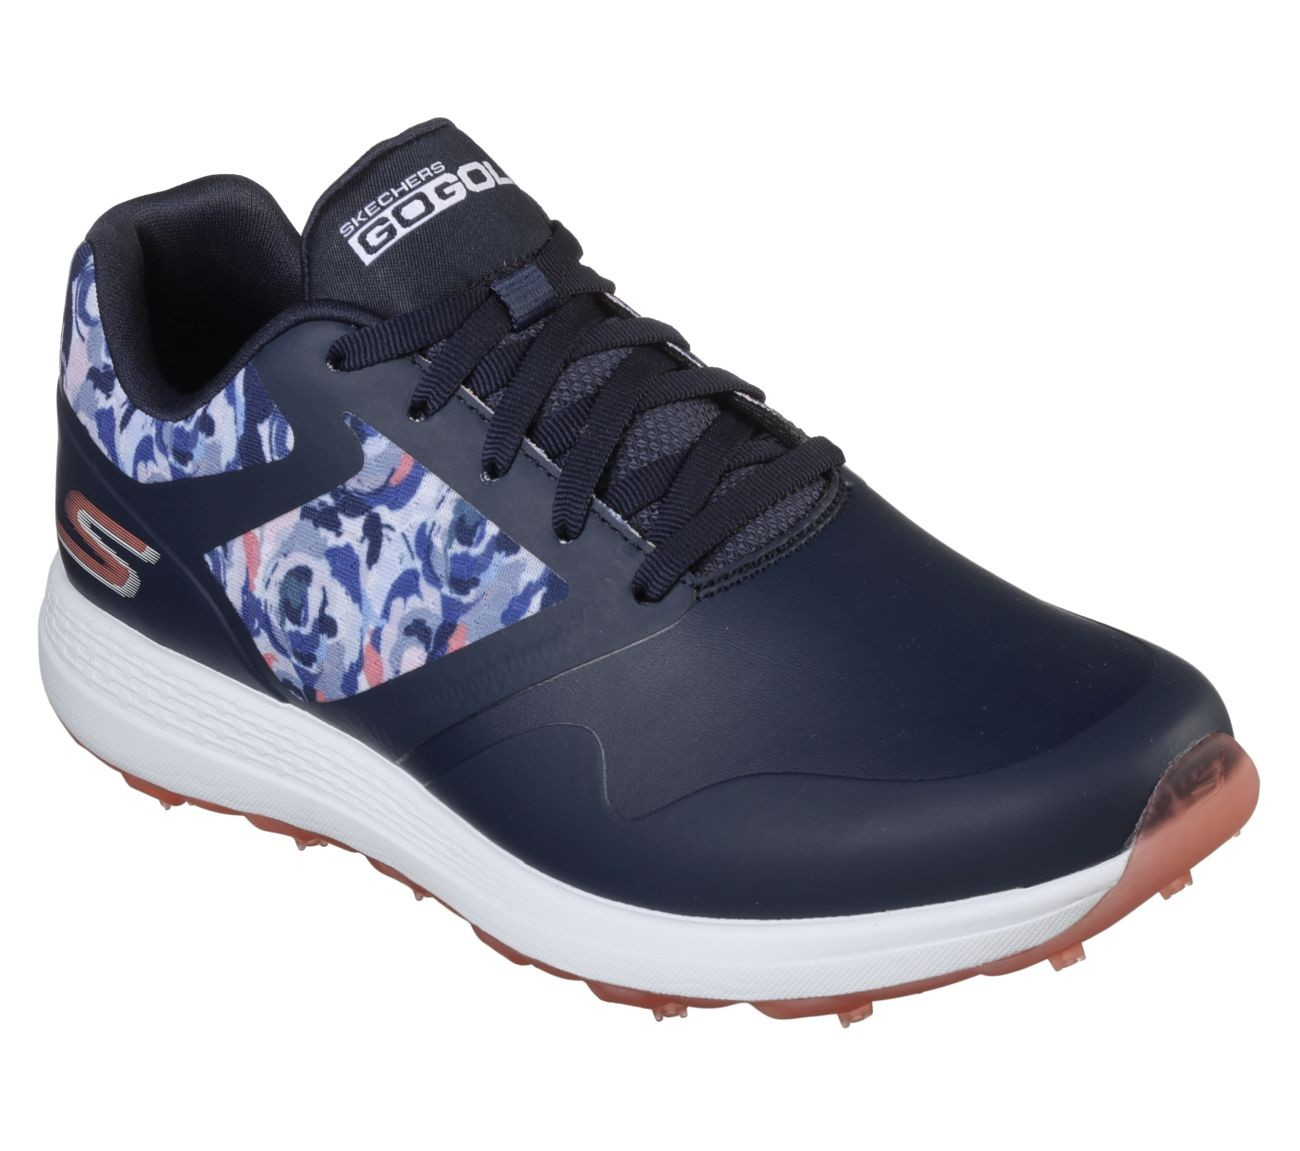 Womens Go Golf Max - Draw - Water Resistant